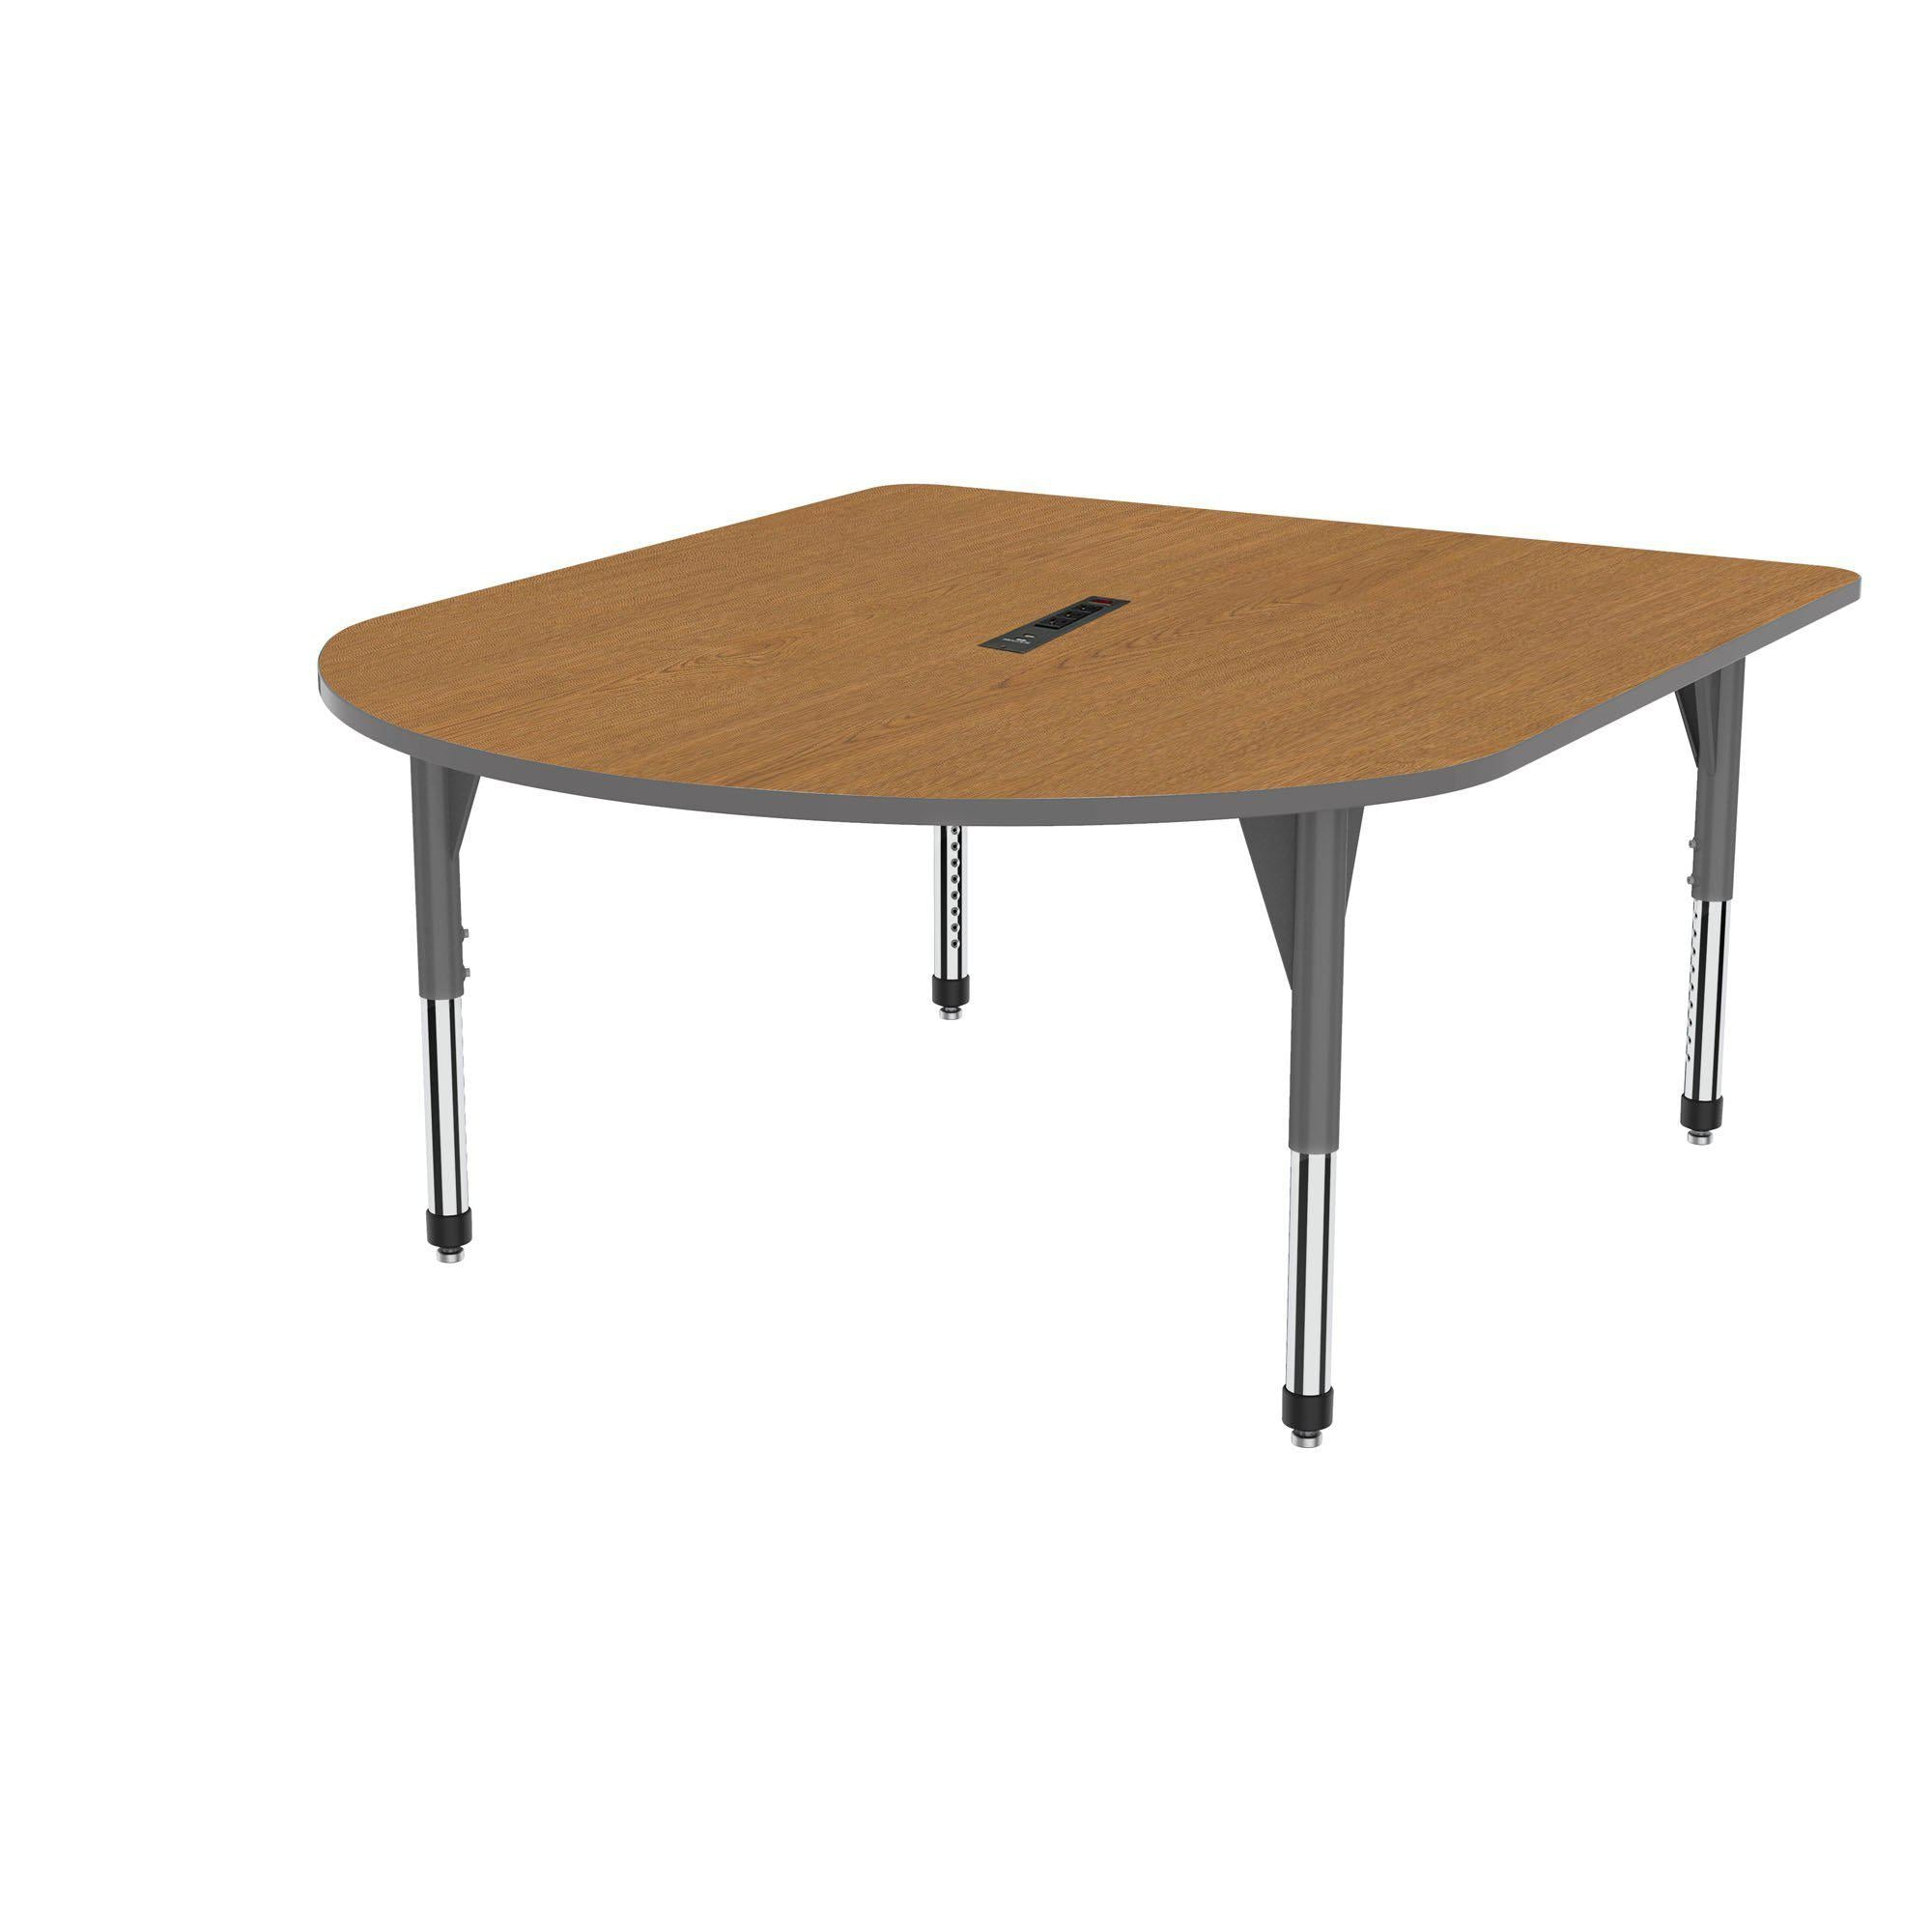 "Premier Series Multimedia Tables with Power Module, 60"" x 72"""